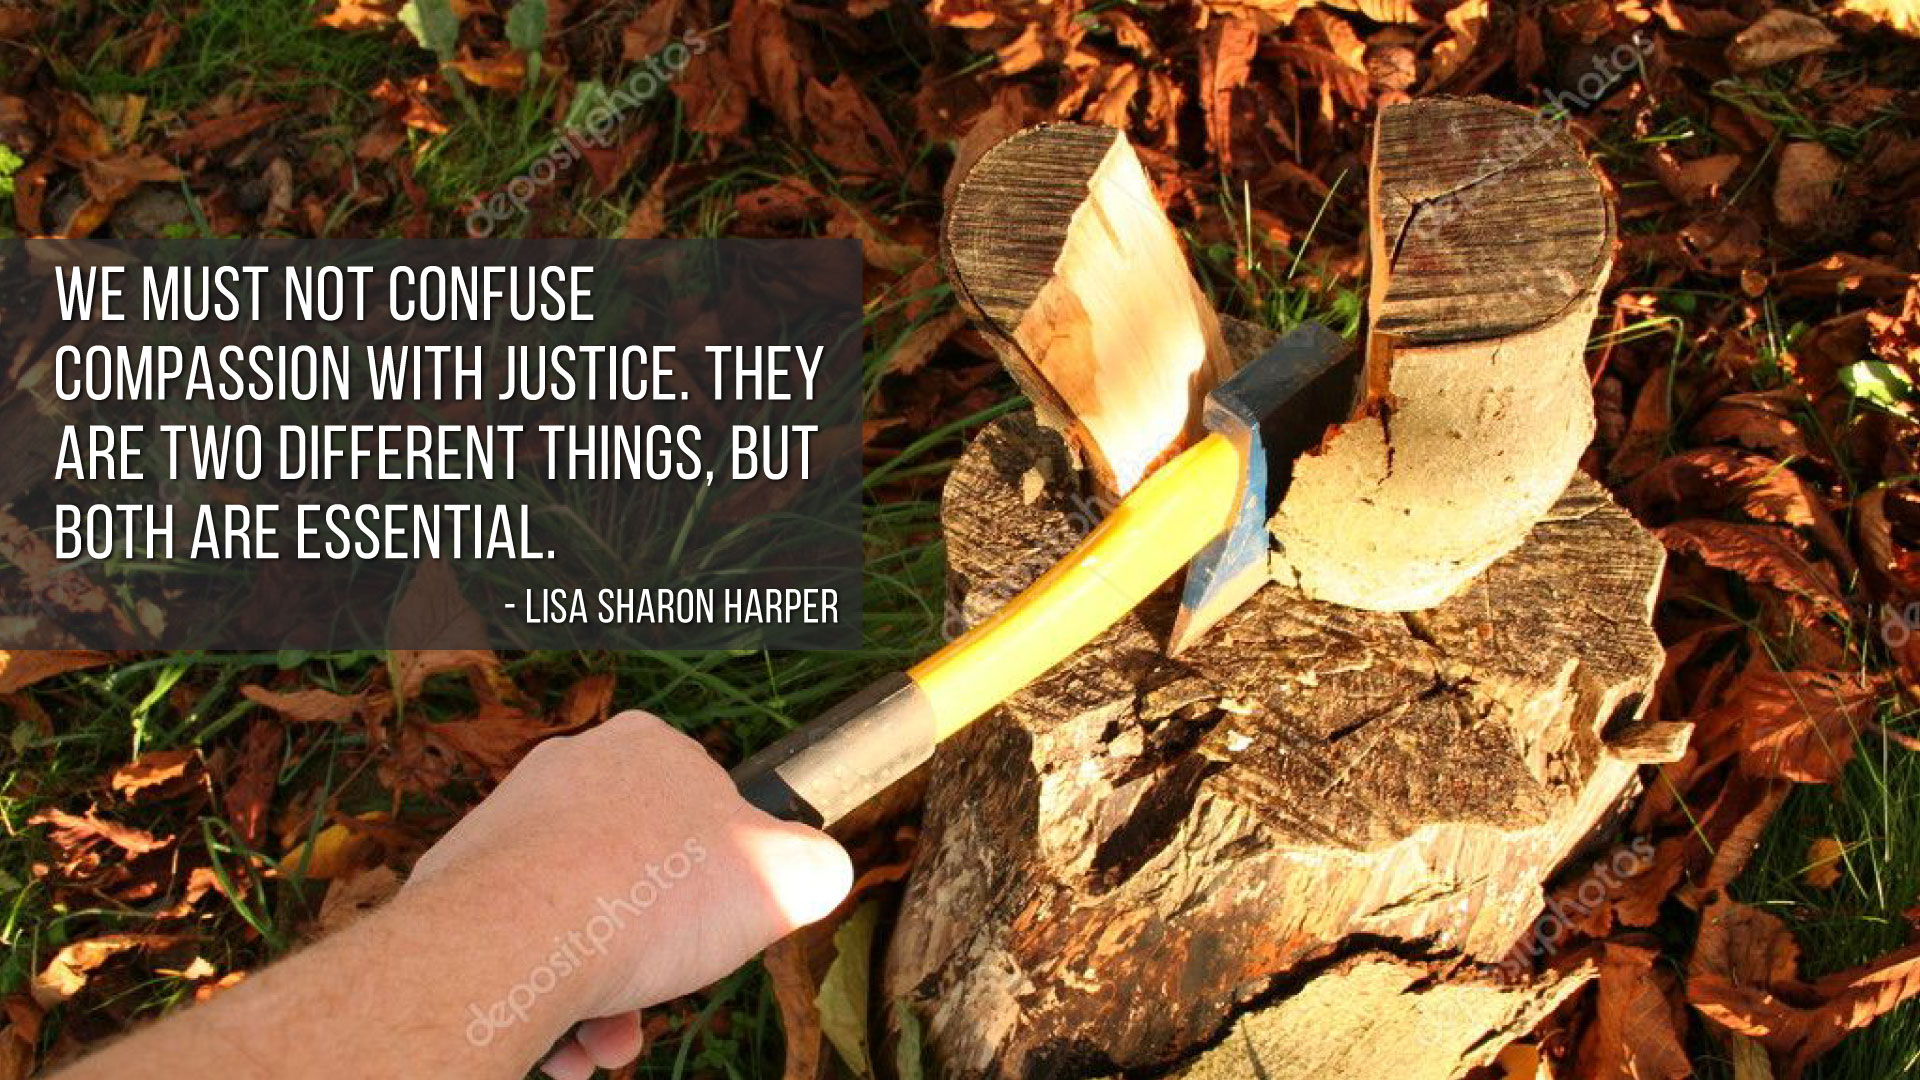 """We must not confuse compassion with justice…"" – Lisa Sharon Harper [1920 x 1080]"